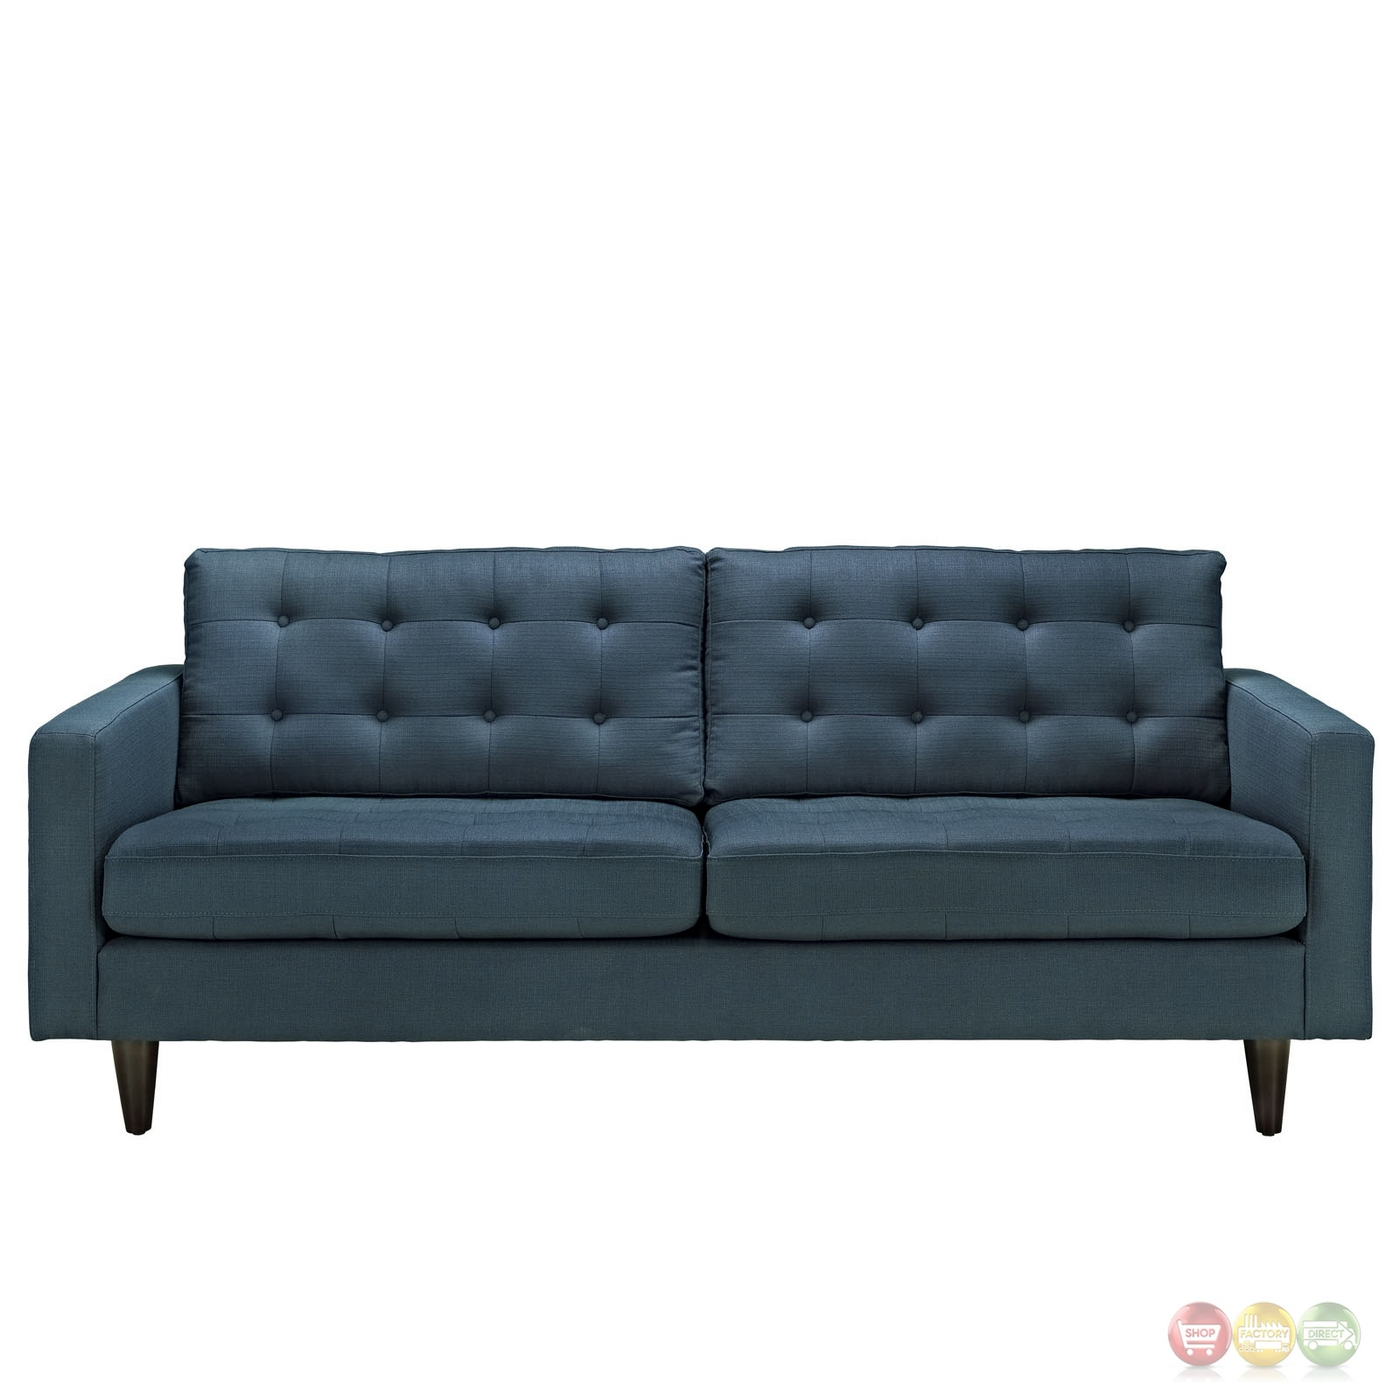 Empress contemporary button tufted upholstered sofa azure for Modern love seats